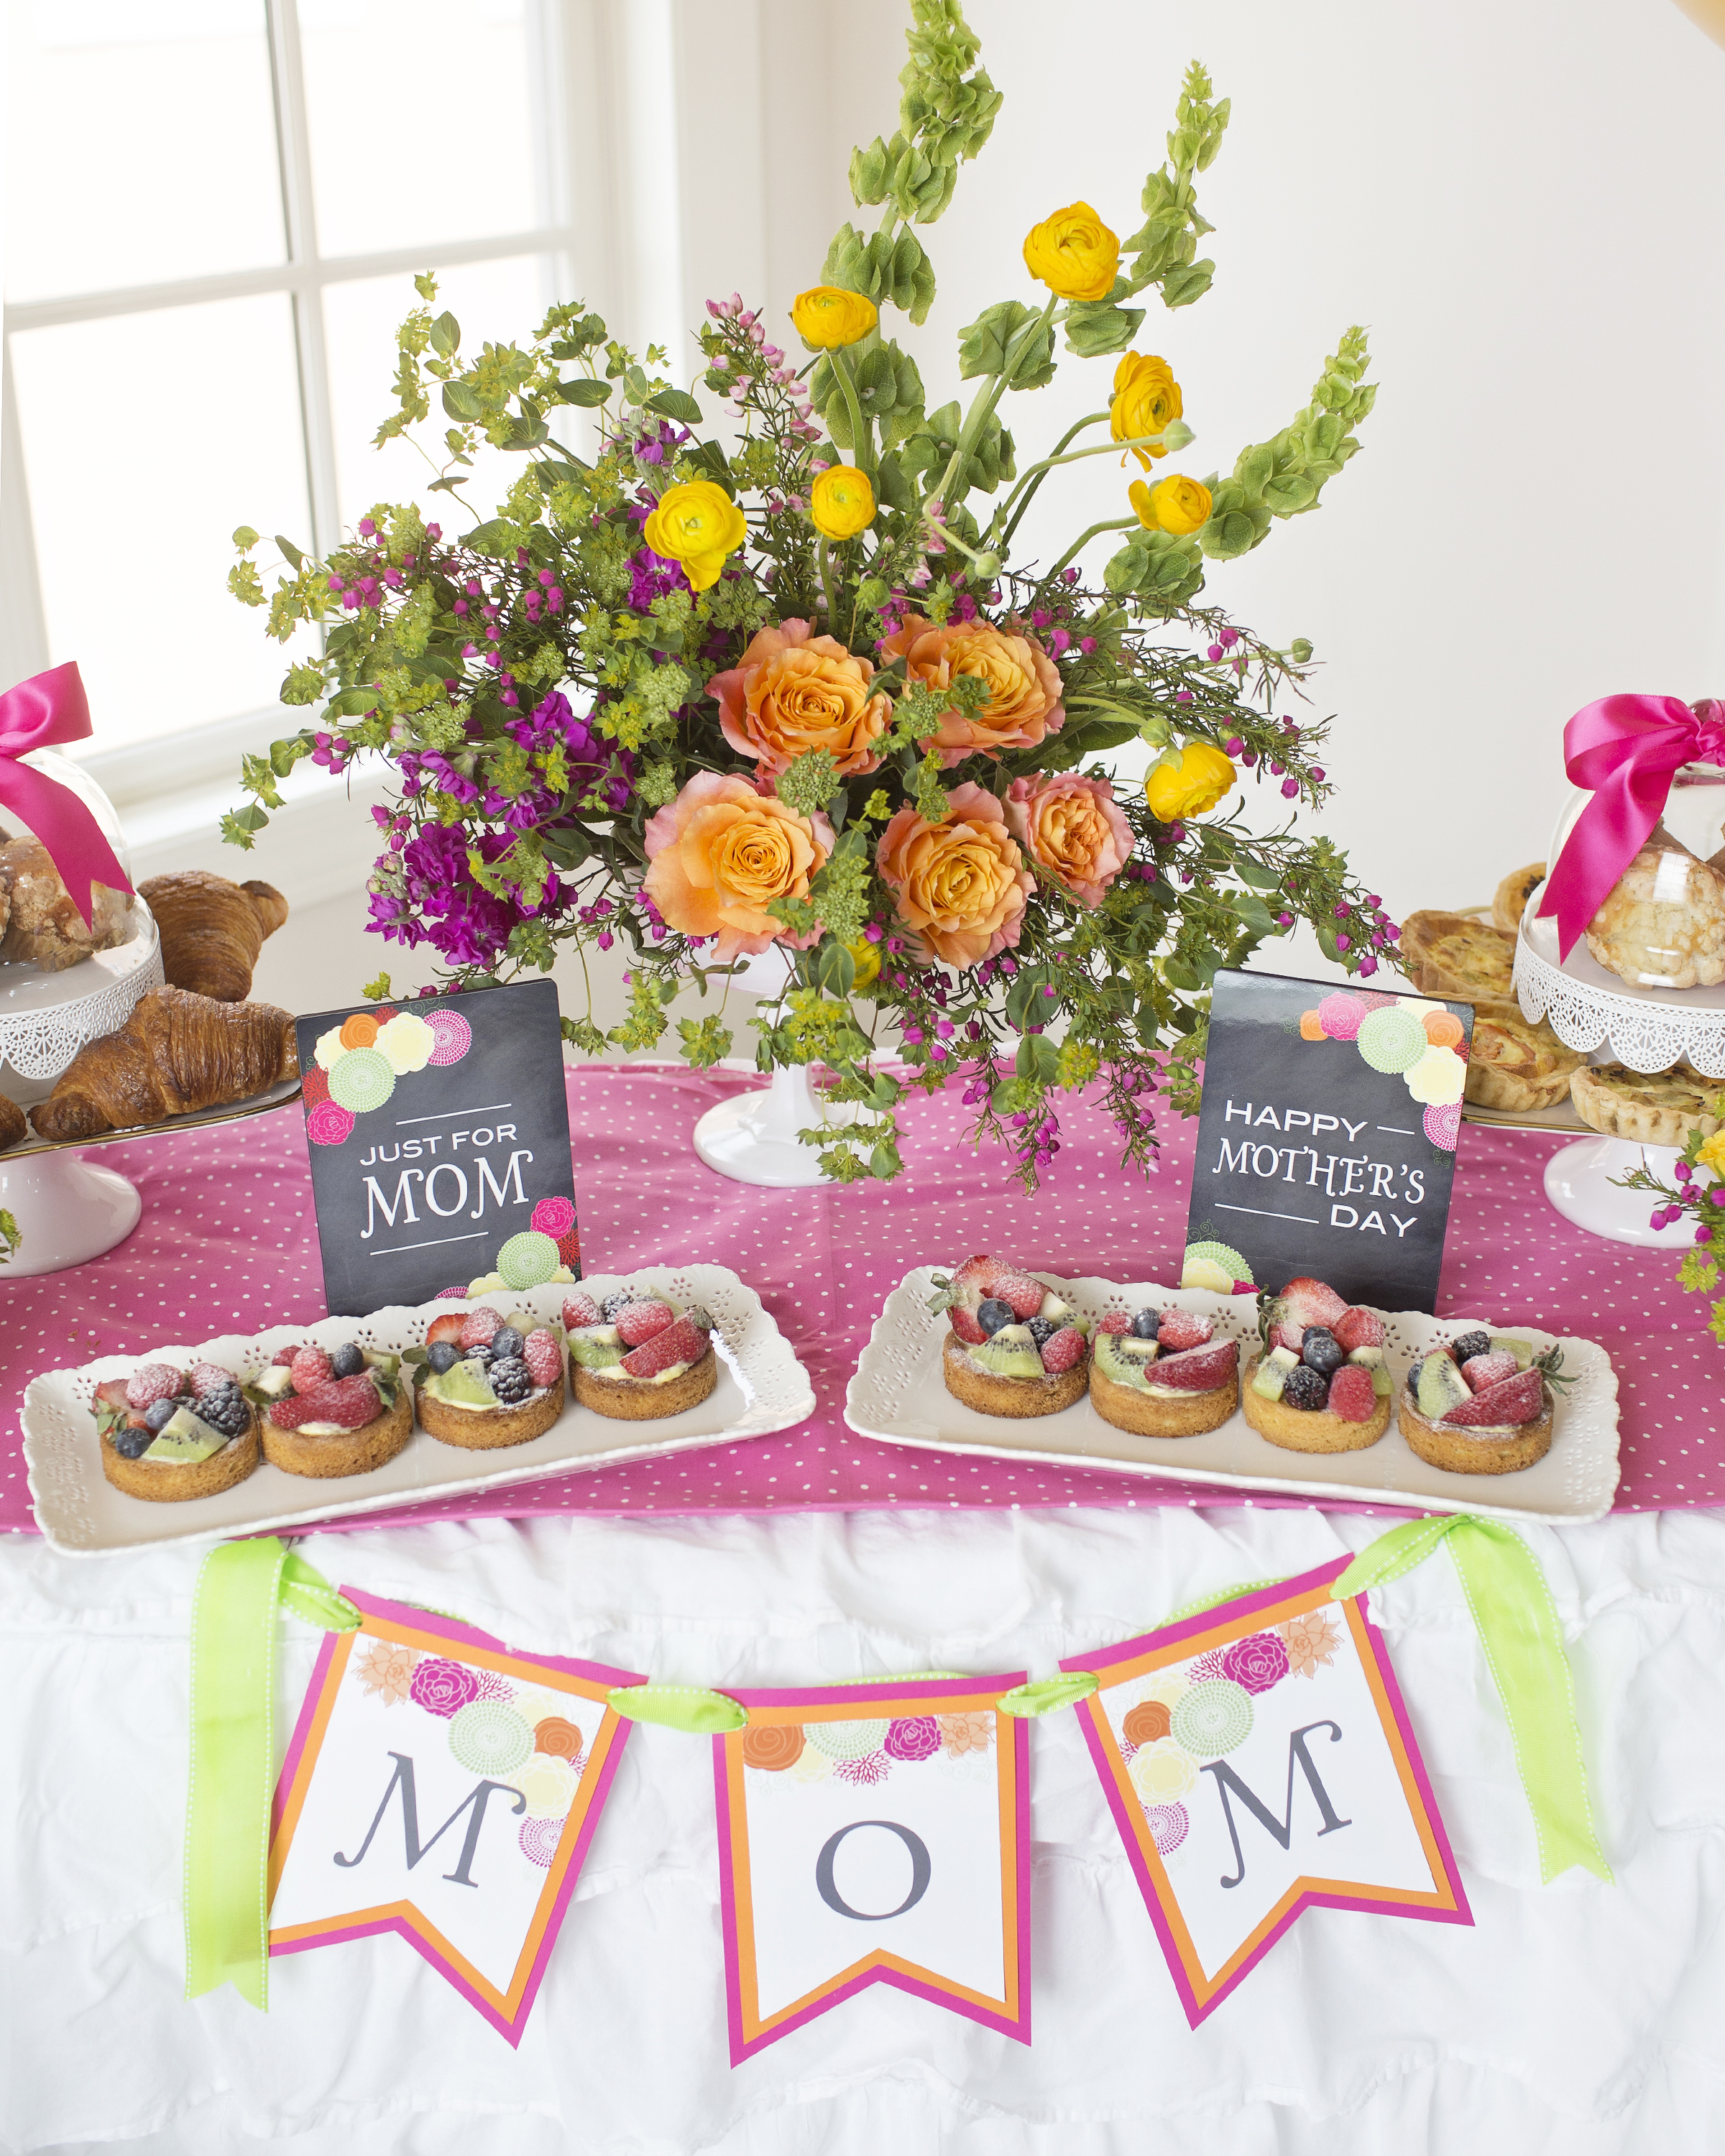 Mothers day coffee with mom 6 mothers day coffee with mom mom banner floral arrangement chalkboard signs dhlflorist Choice Image